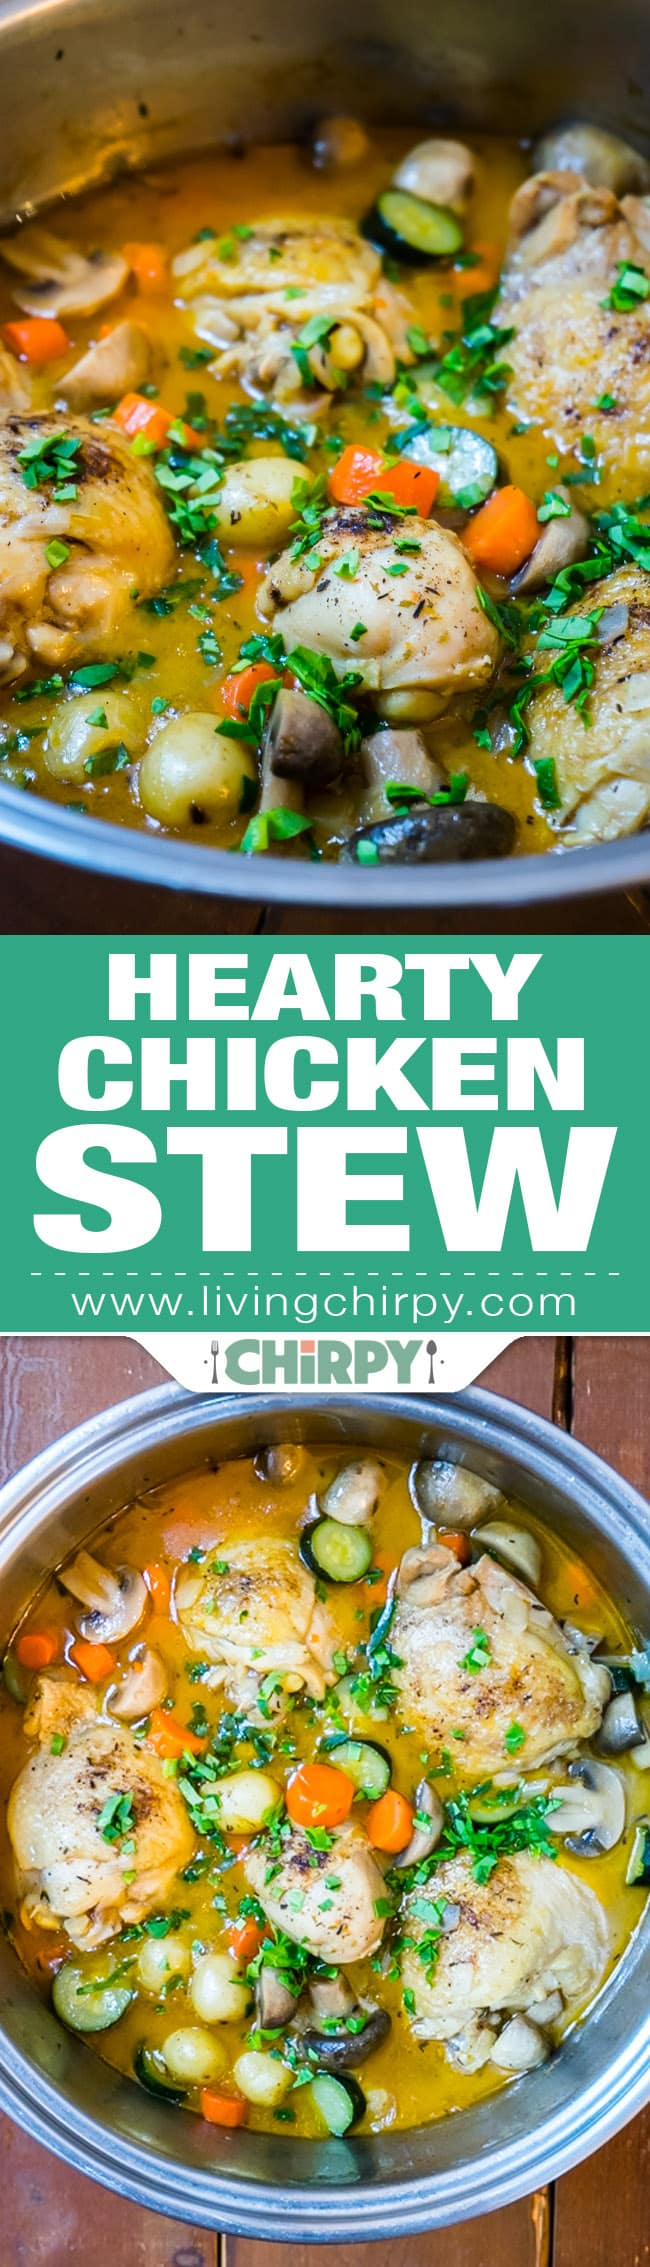 hearty-chicken-stew-pin